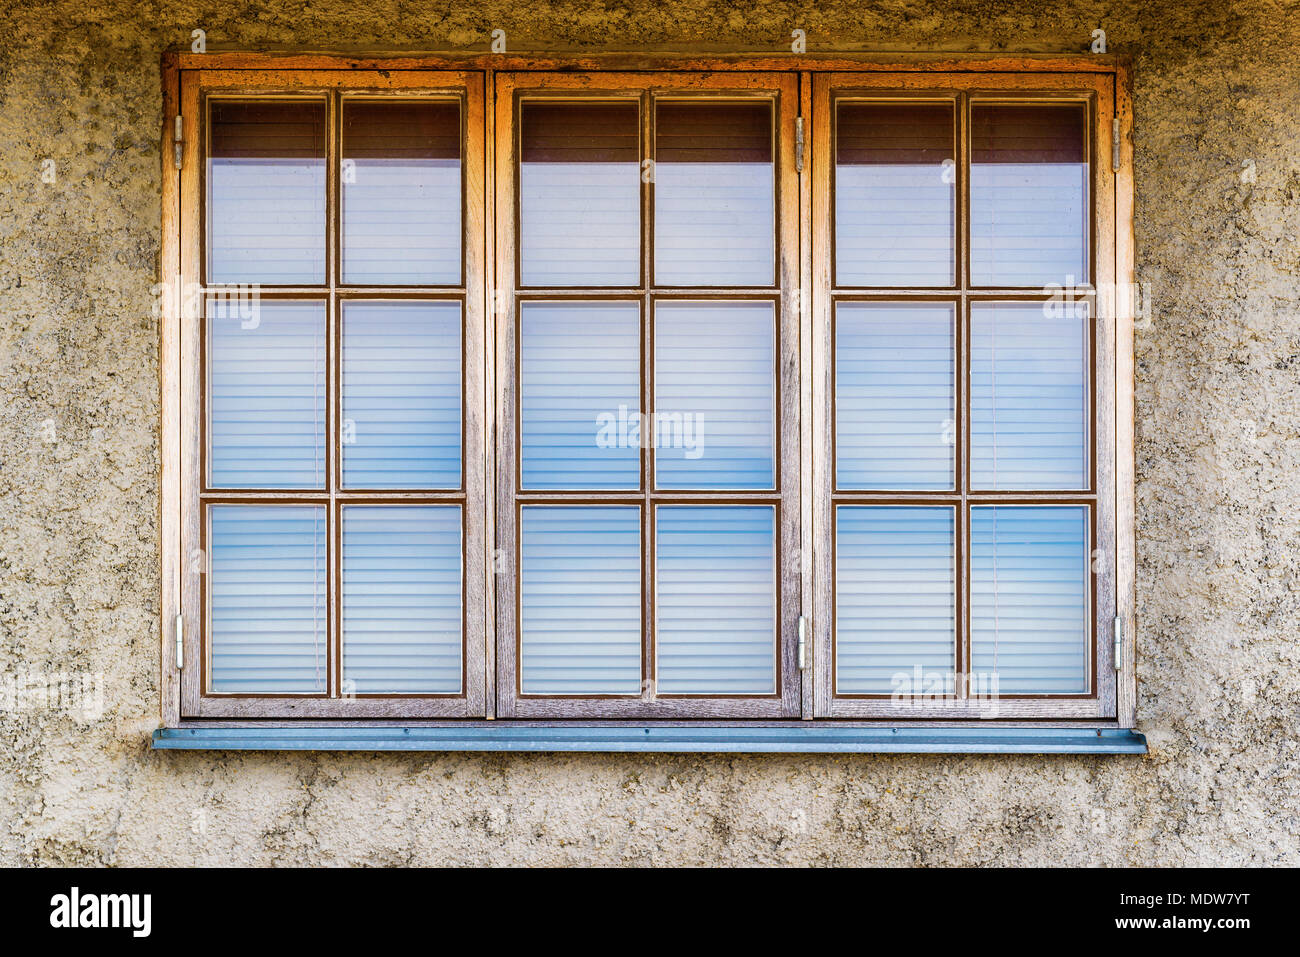 Three windows with blinds on a gray facade